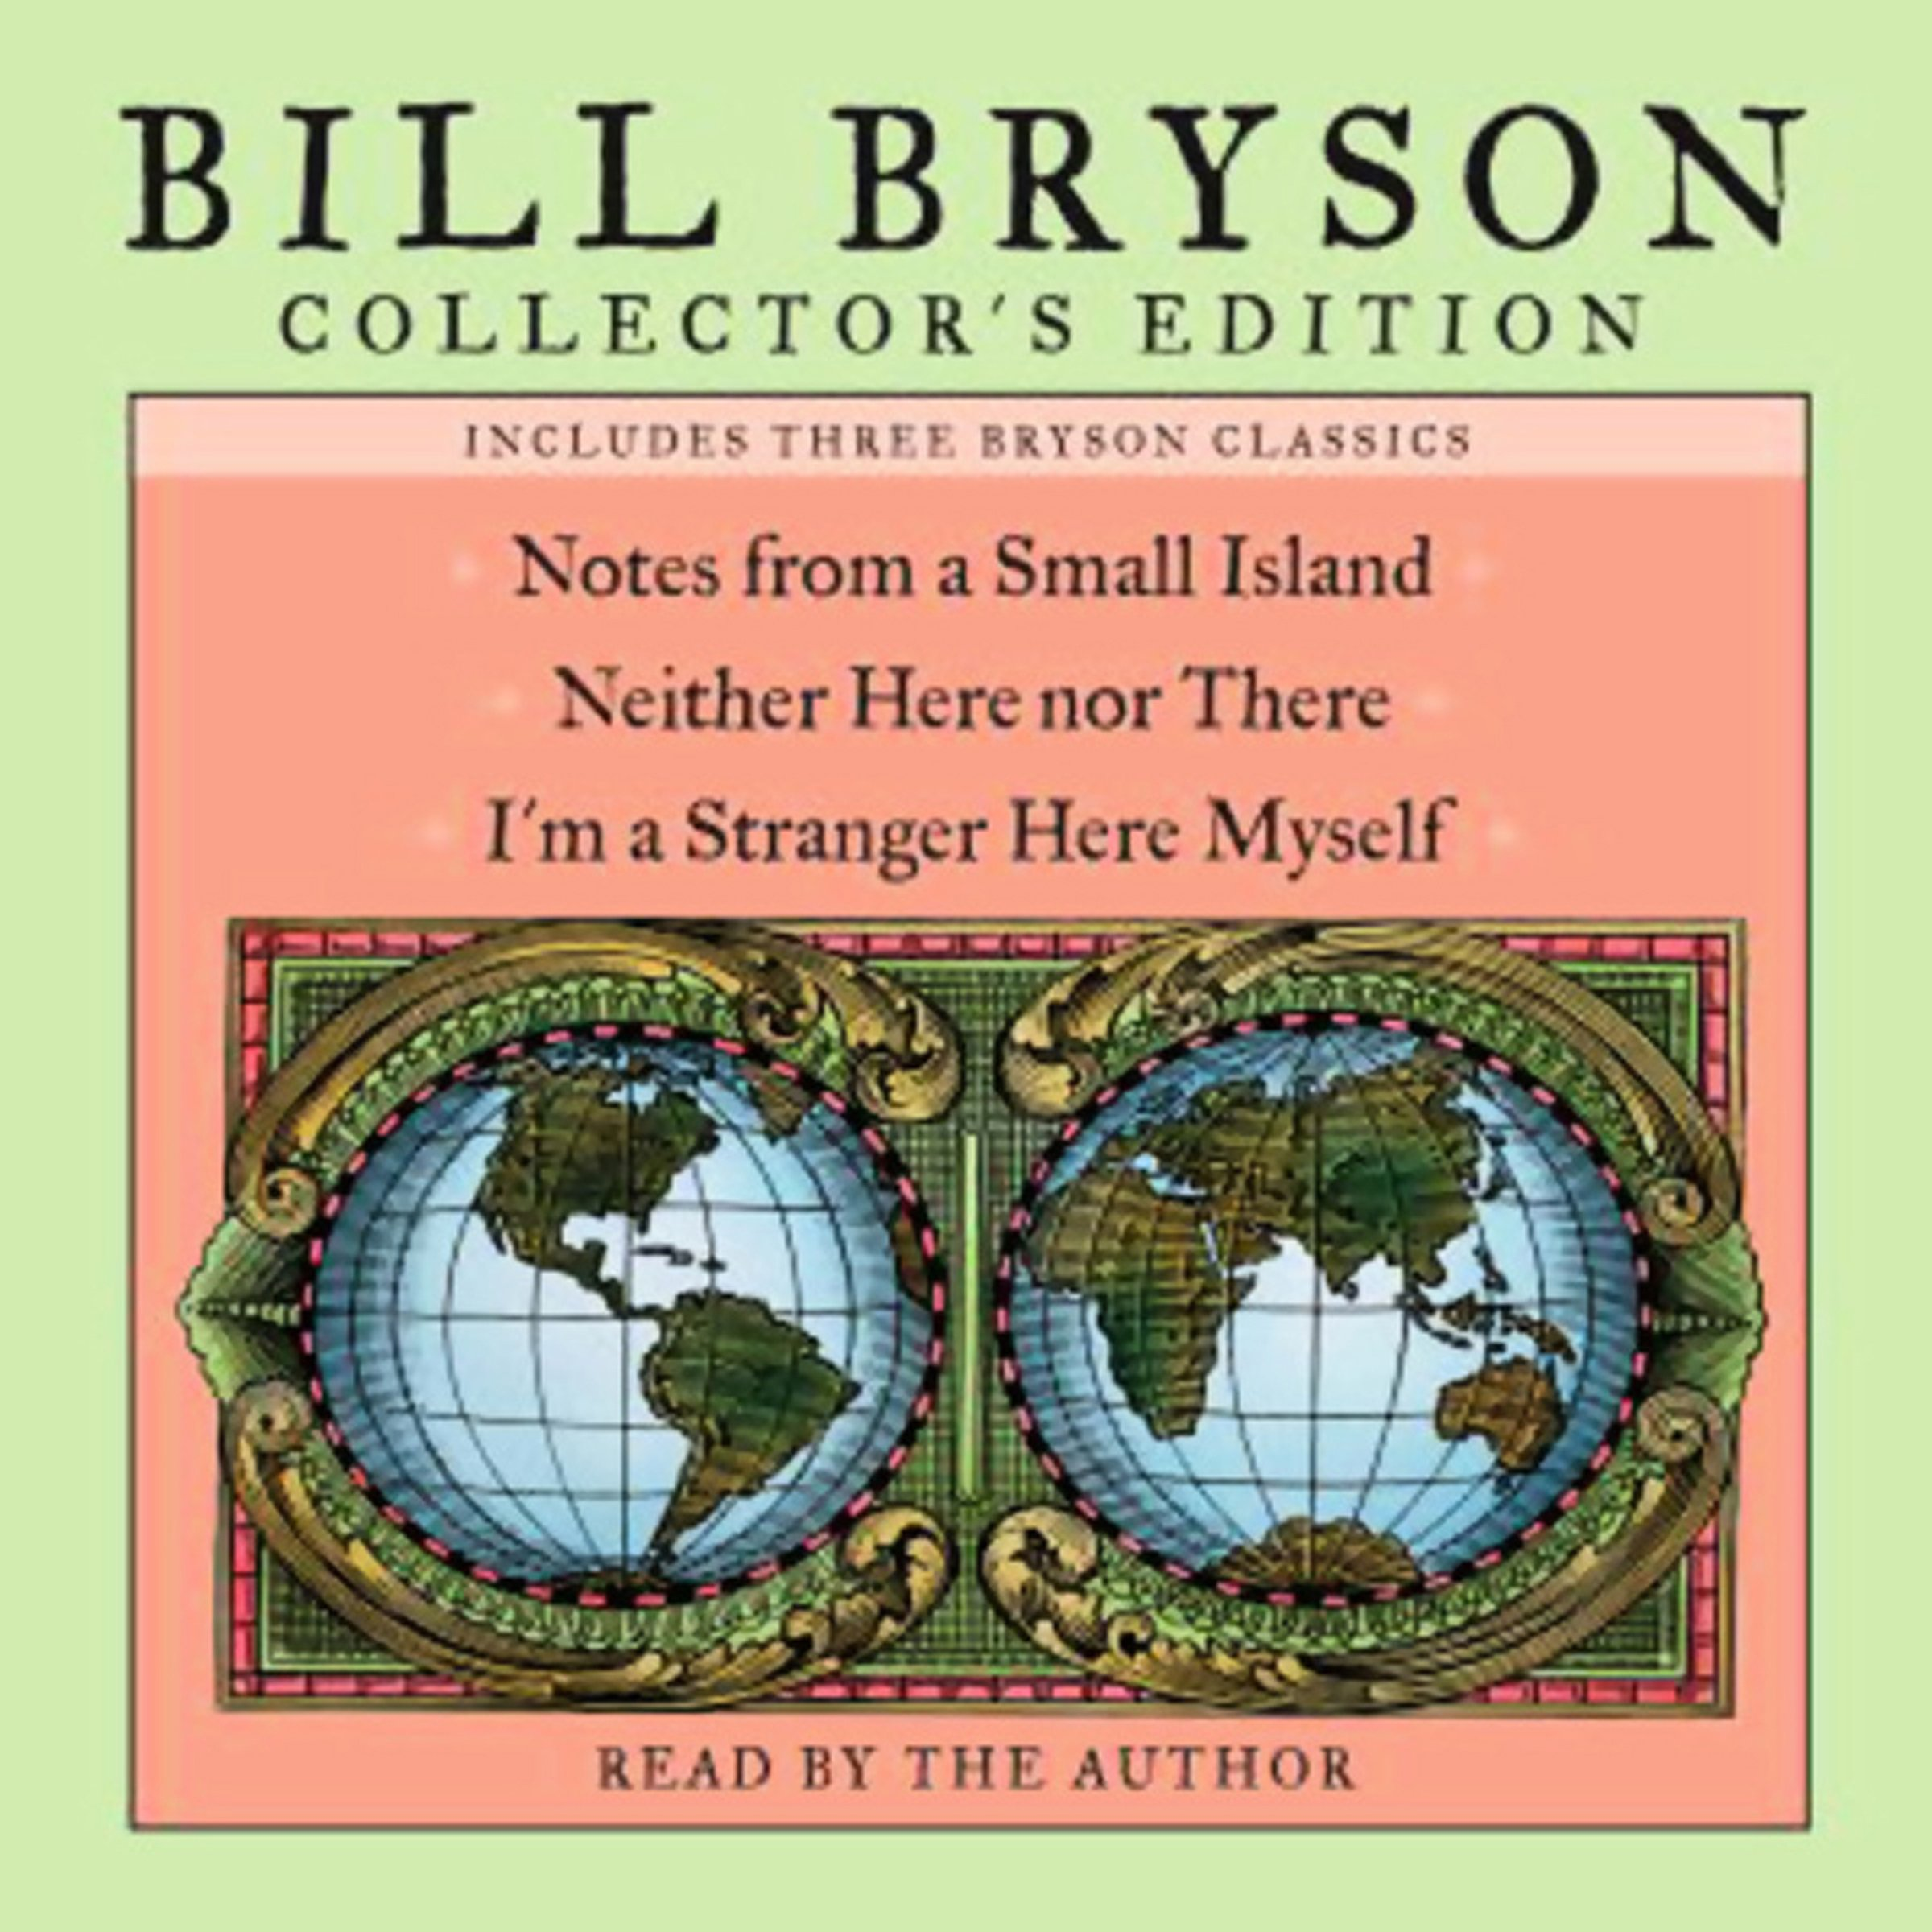 Bill Bryson Collector's Edition: Notes from a Small Island, Neither Here Nor There, and I'm a Stranger Here Myself by Random House Audio (Image #1)